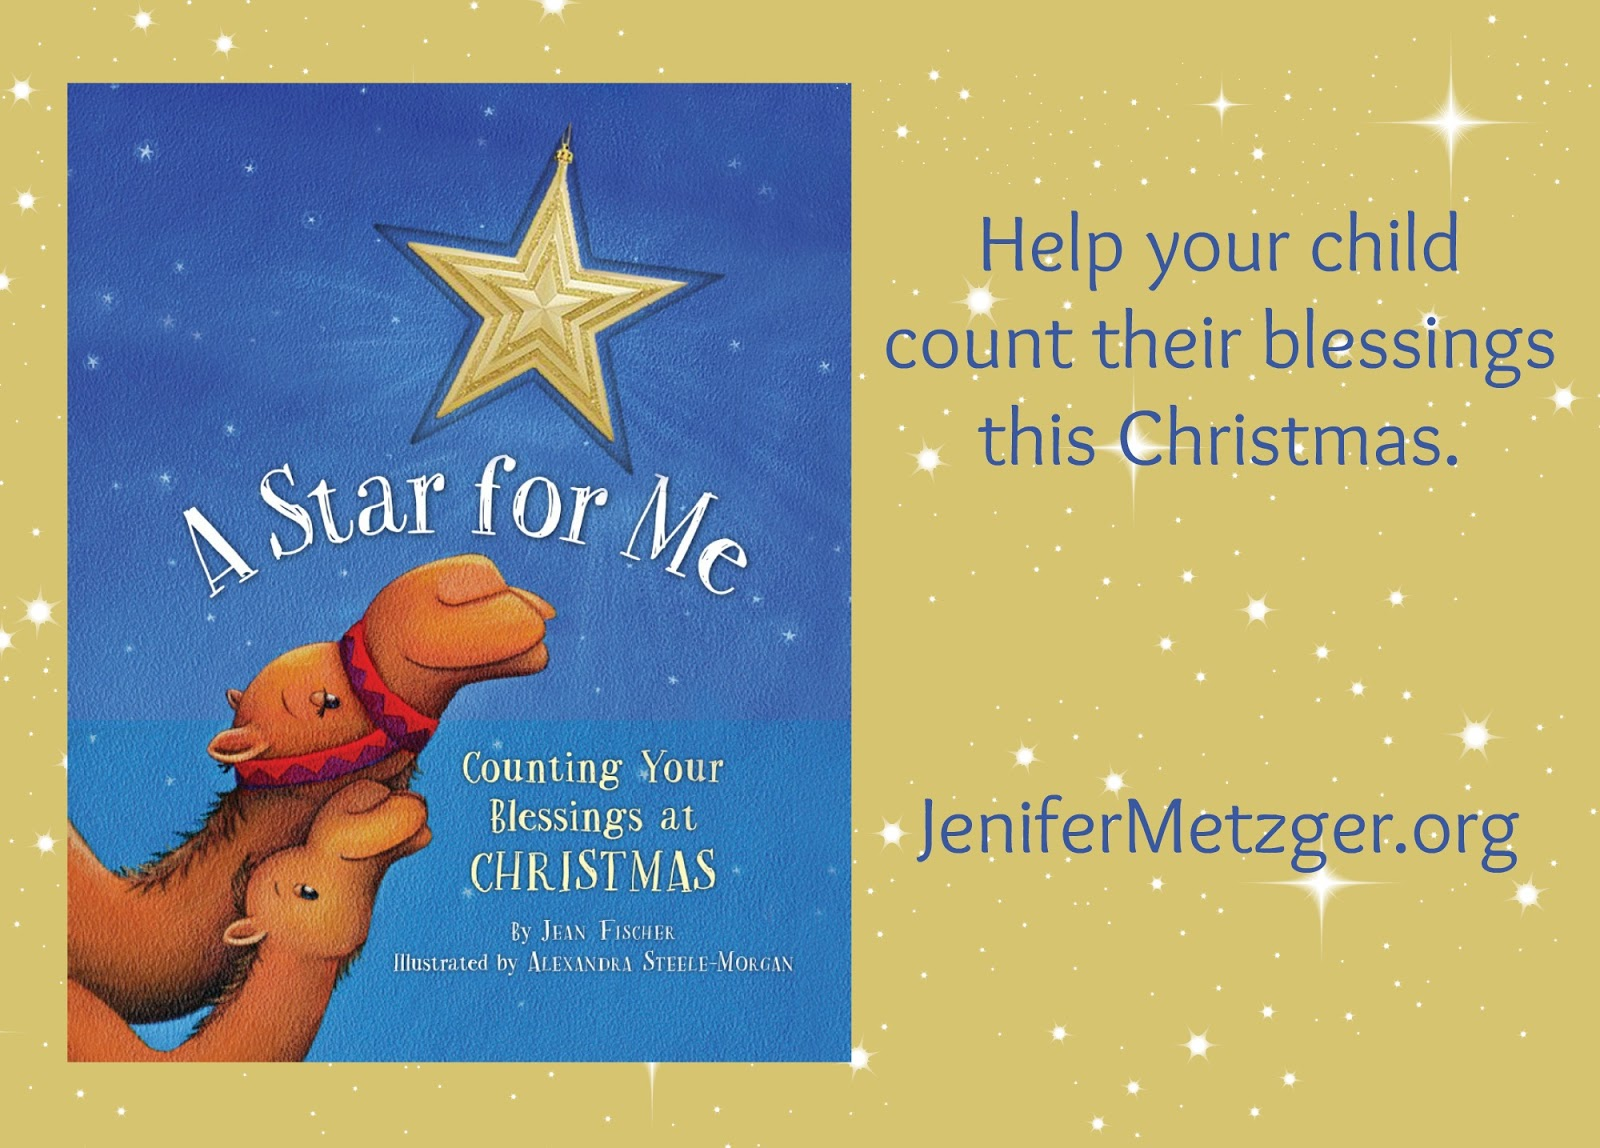 Help your child count their blessings this Christmas.